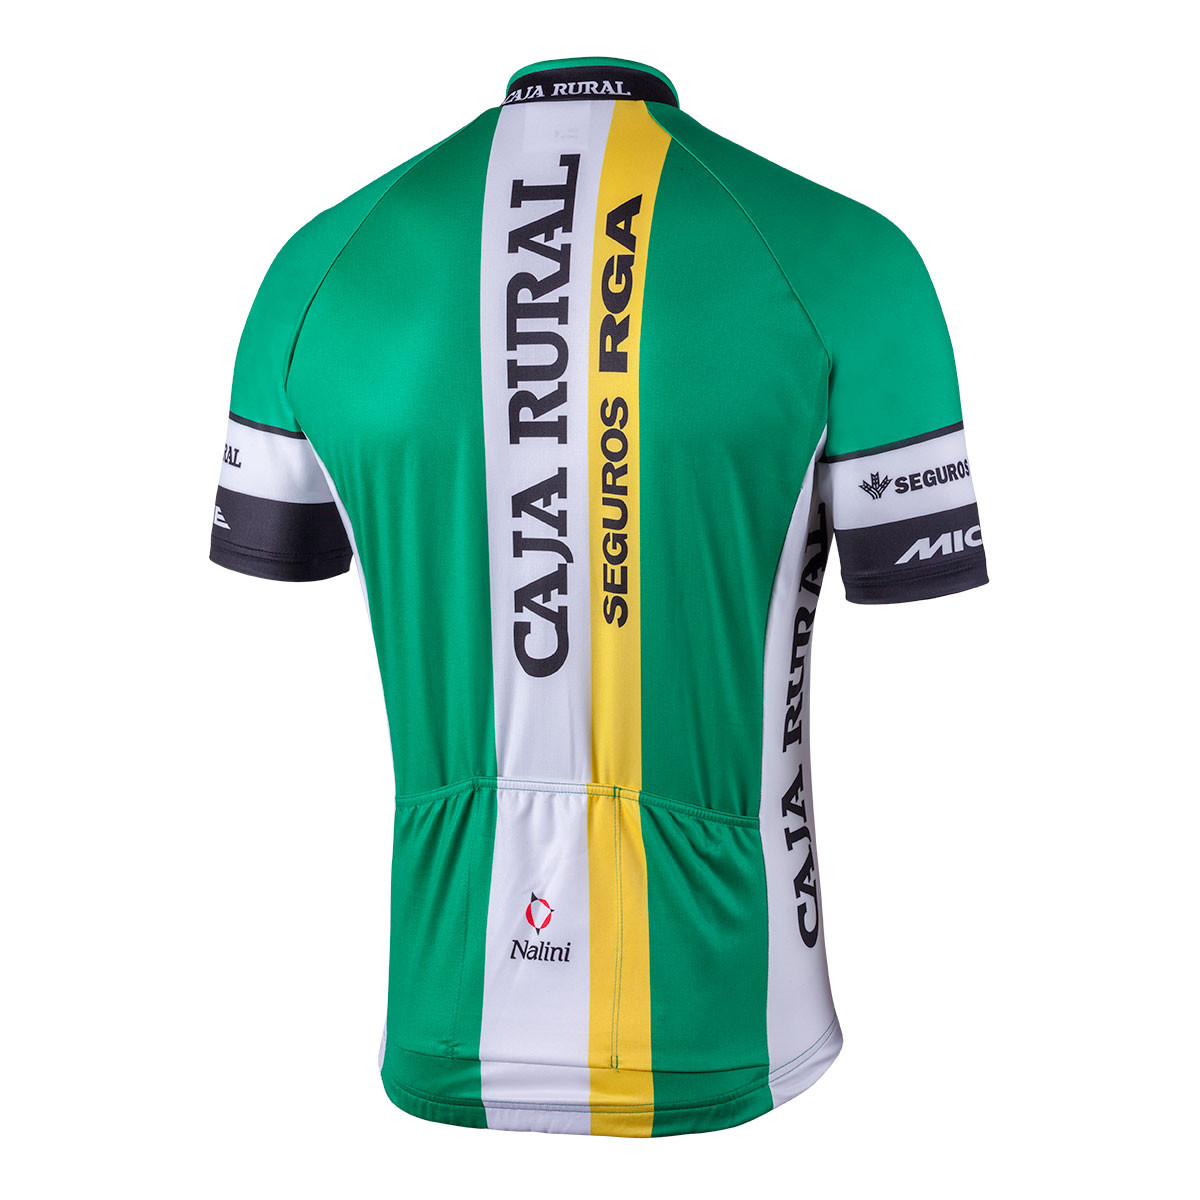 ... 2018 Caja Rural Full Zip Jersey Rear b32ebe7c1